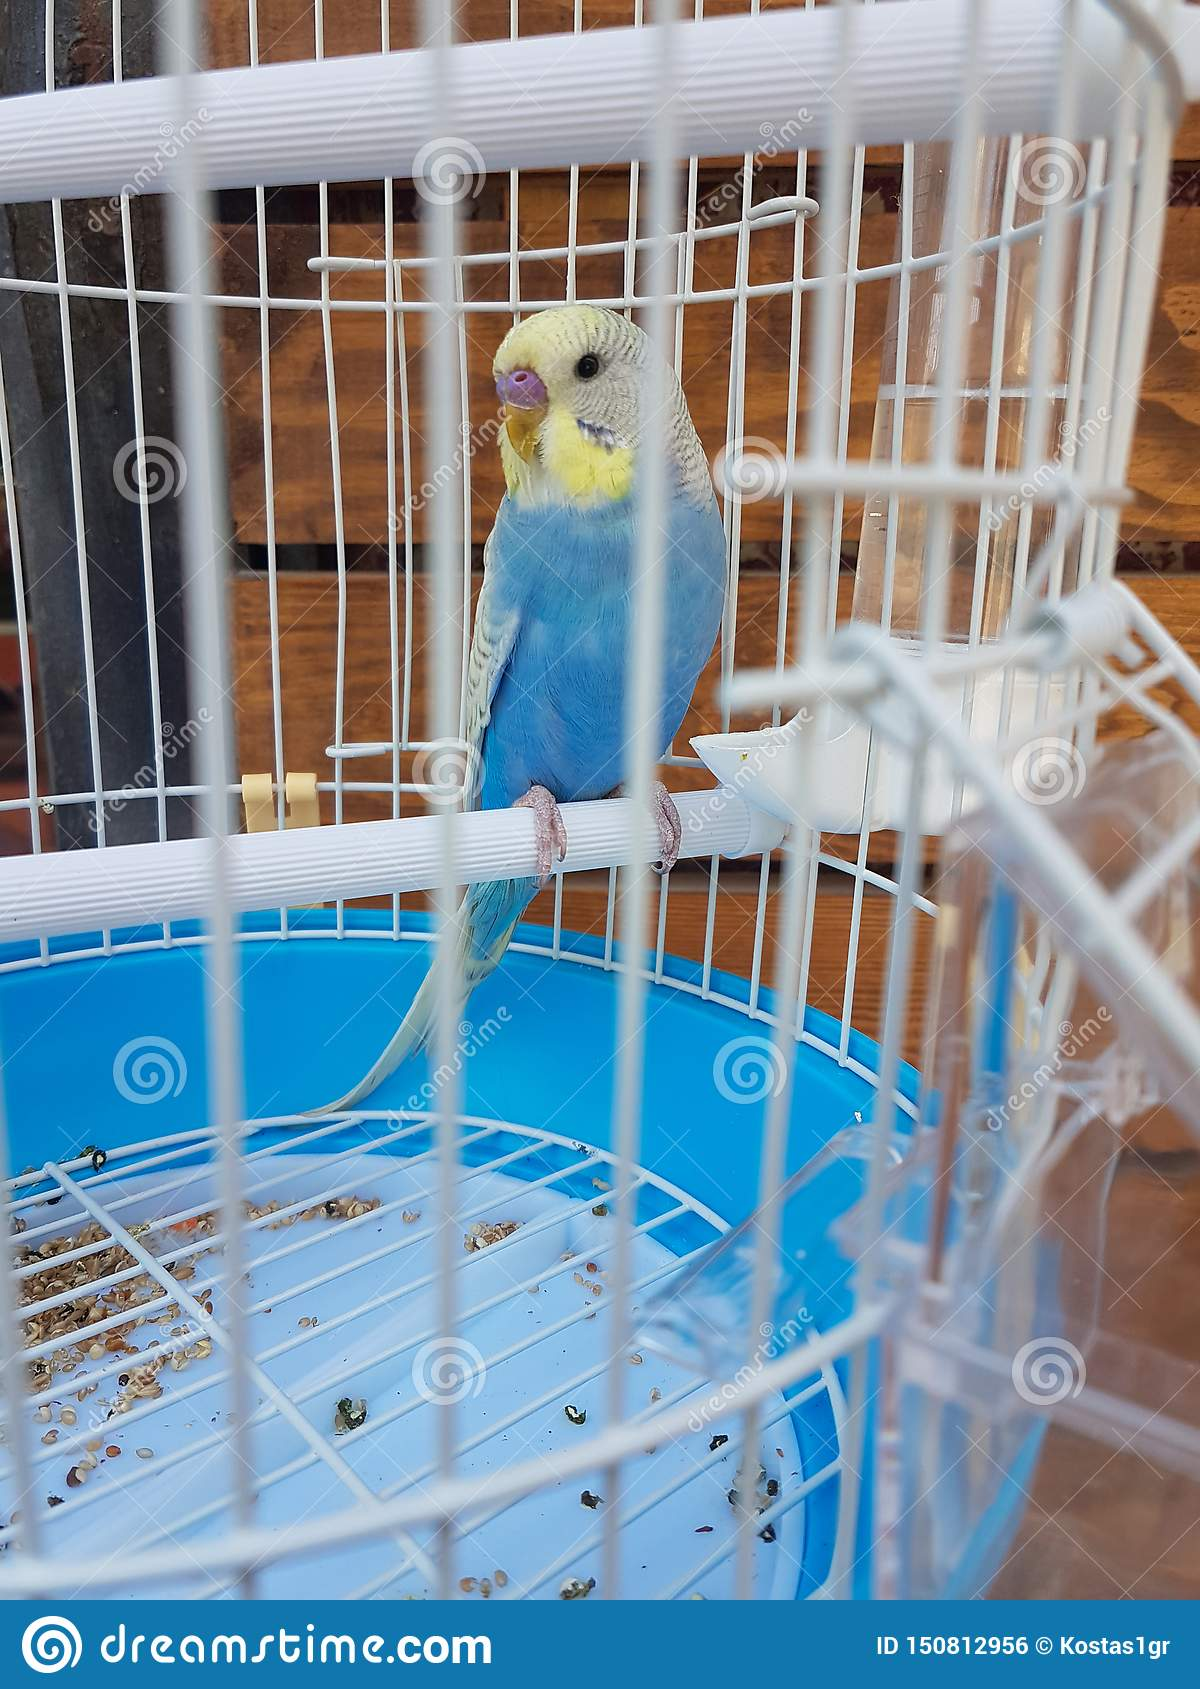 Parrot Blue In A Cage Of Pet Shop Stock Photo Image Of Feathered Looking 150812956